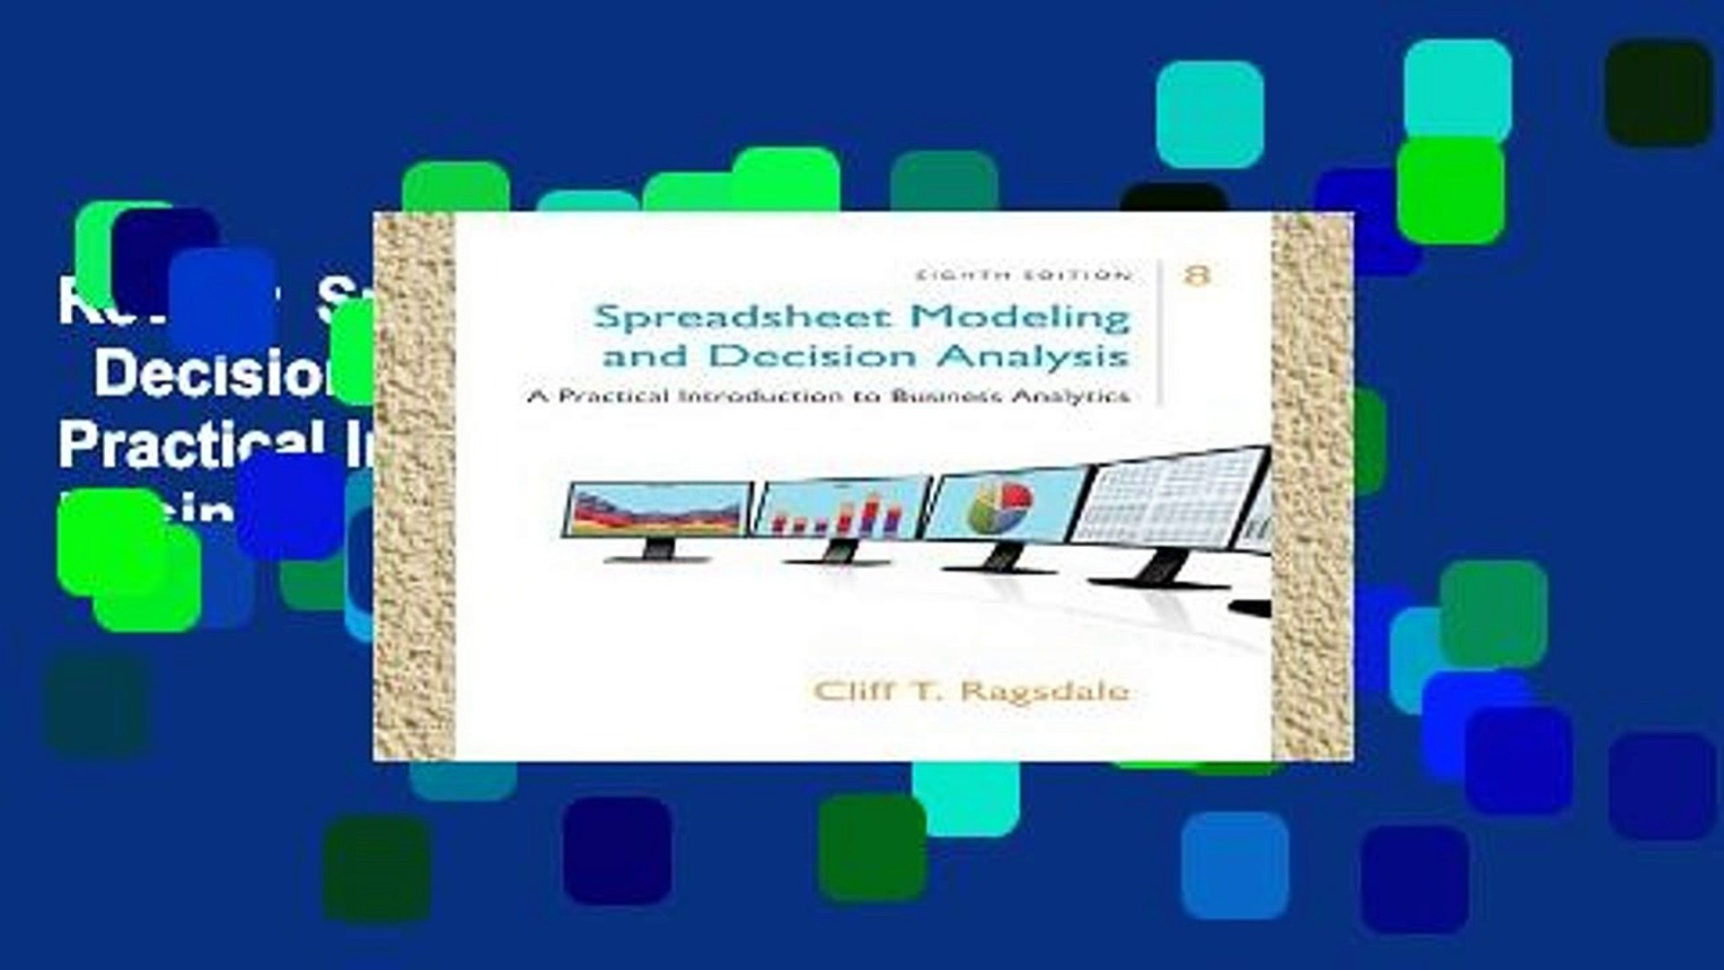 Spreadsheet Modeling With Review Spreadsheet Modeling Decision Analysis: A Practical